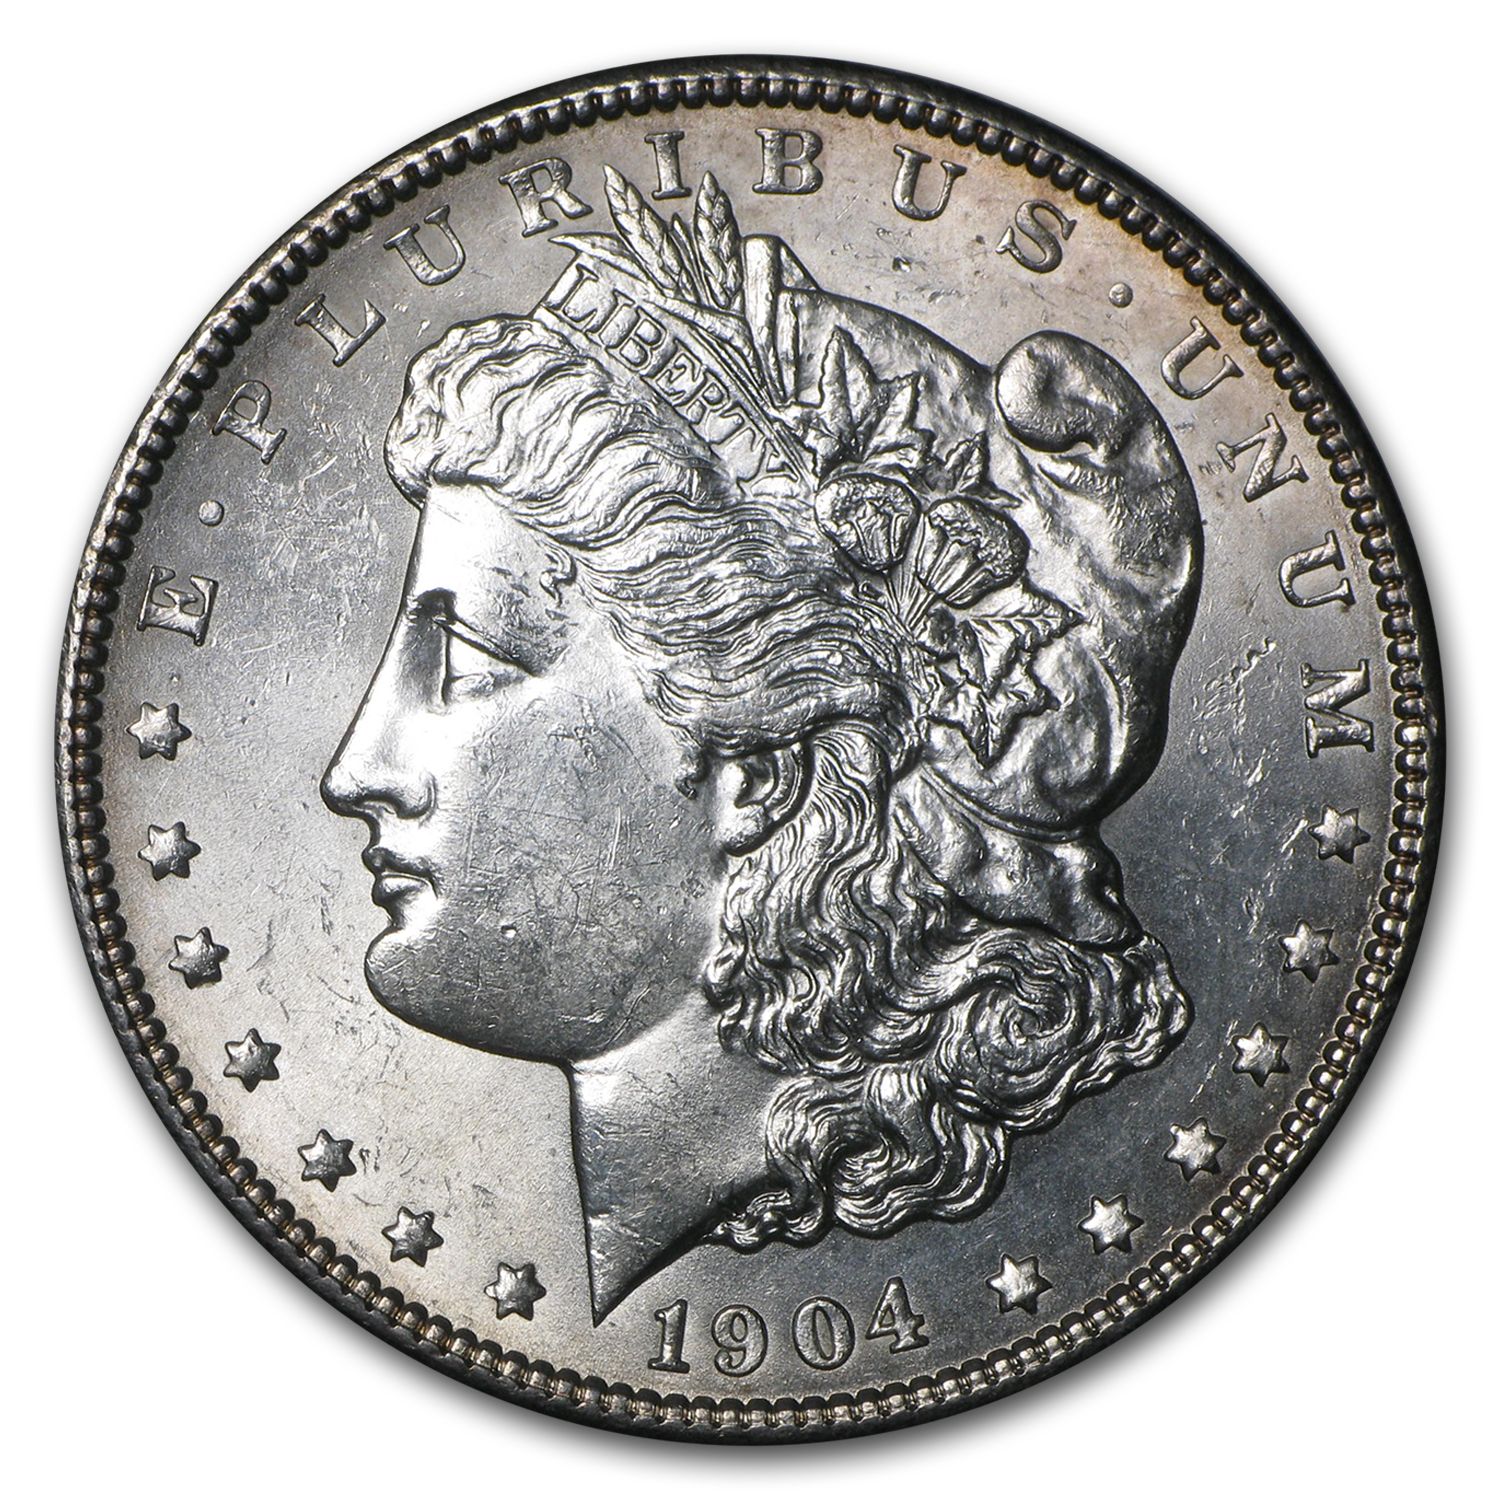 1904 Morgan Dollar BU